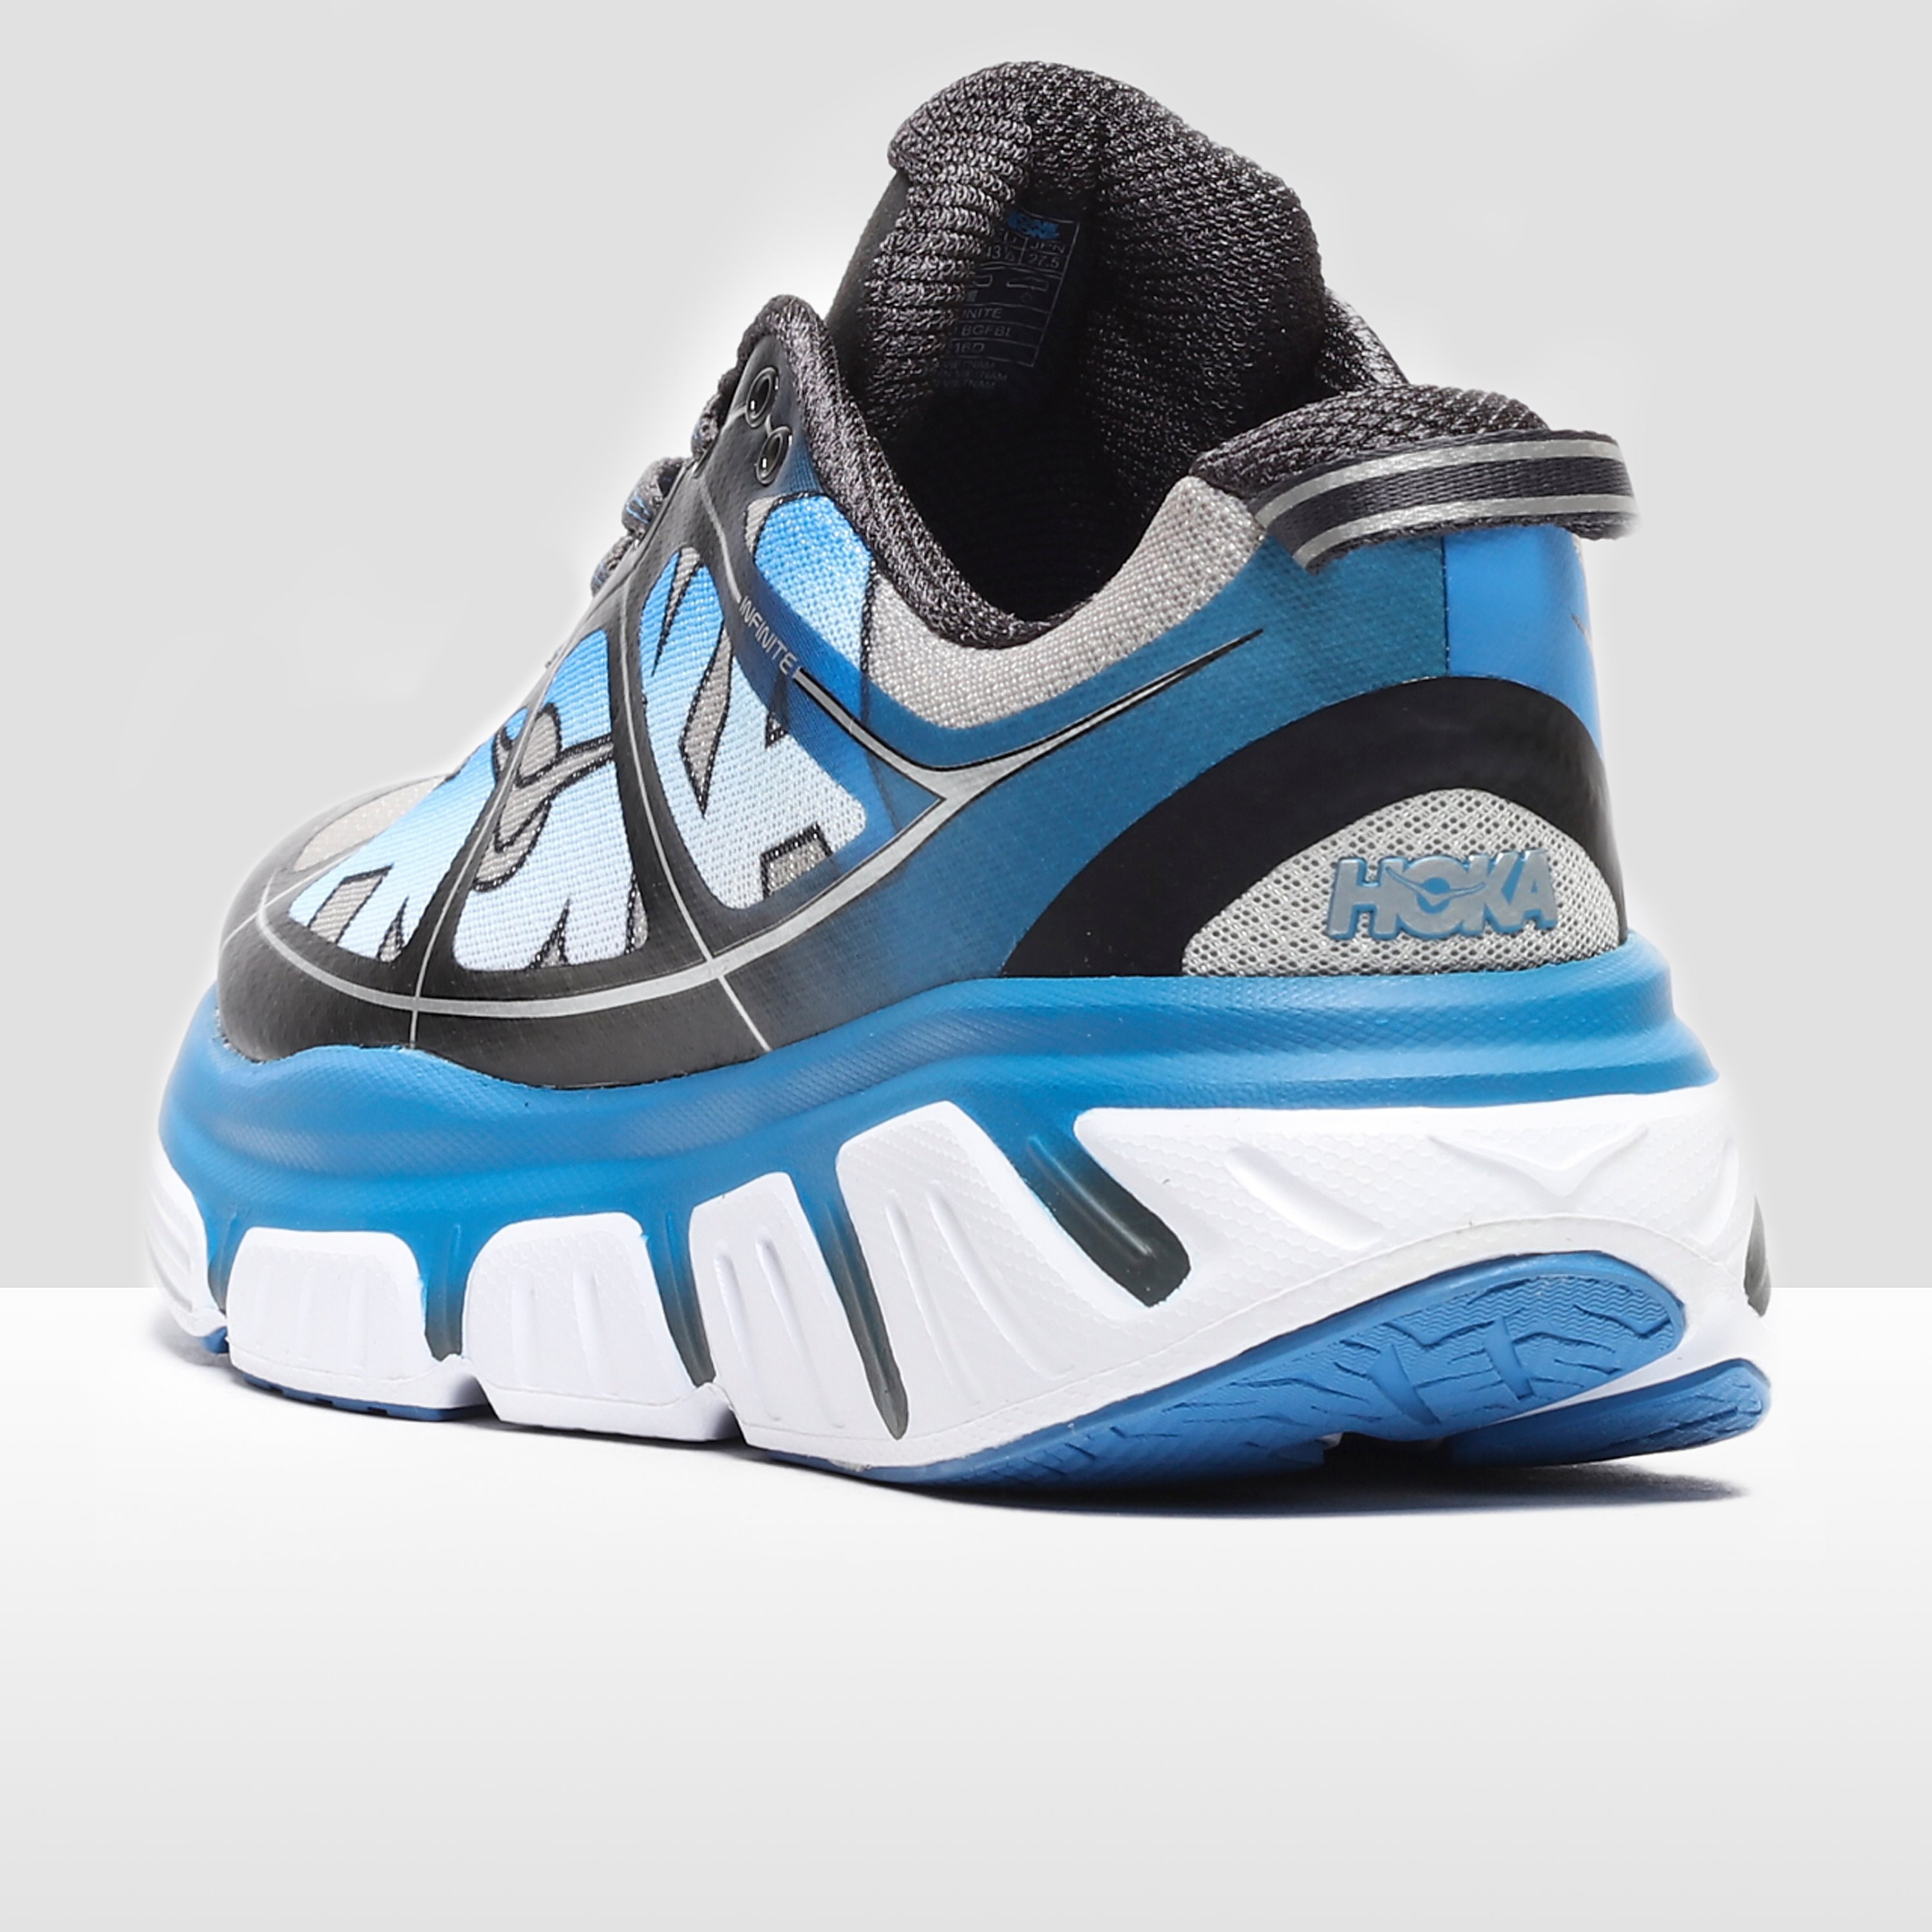 Hoka one one Infinite Men's Running Shoes